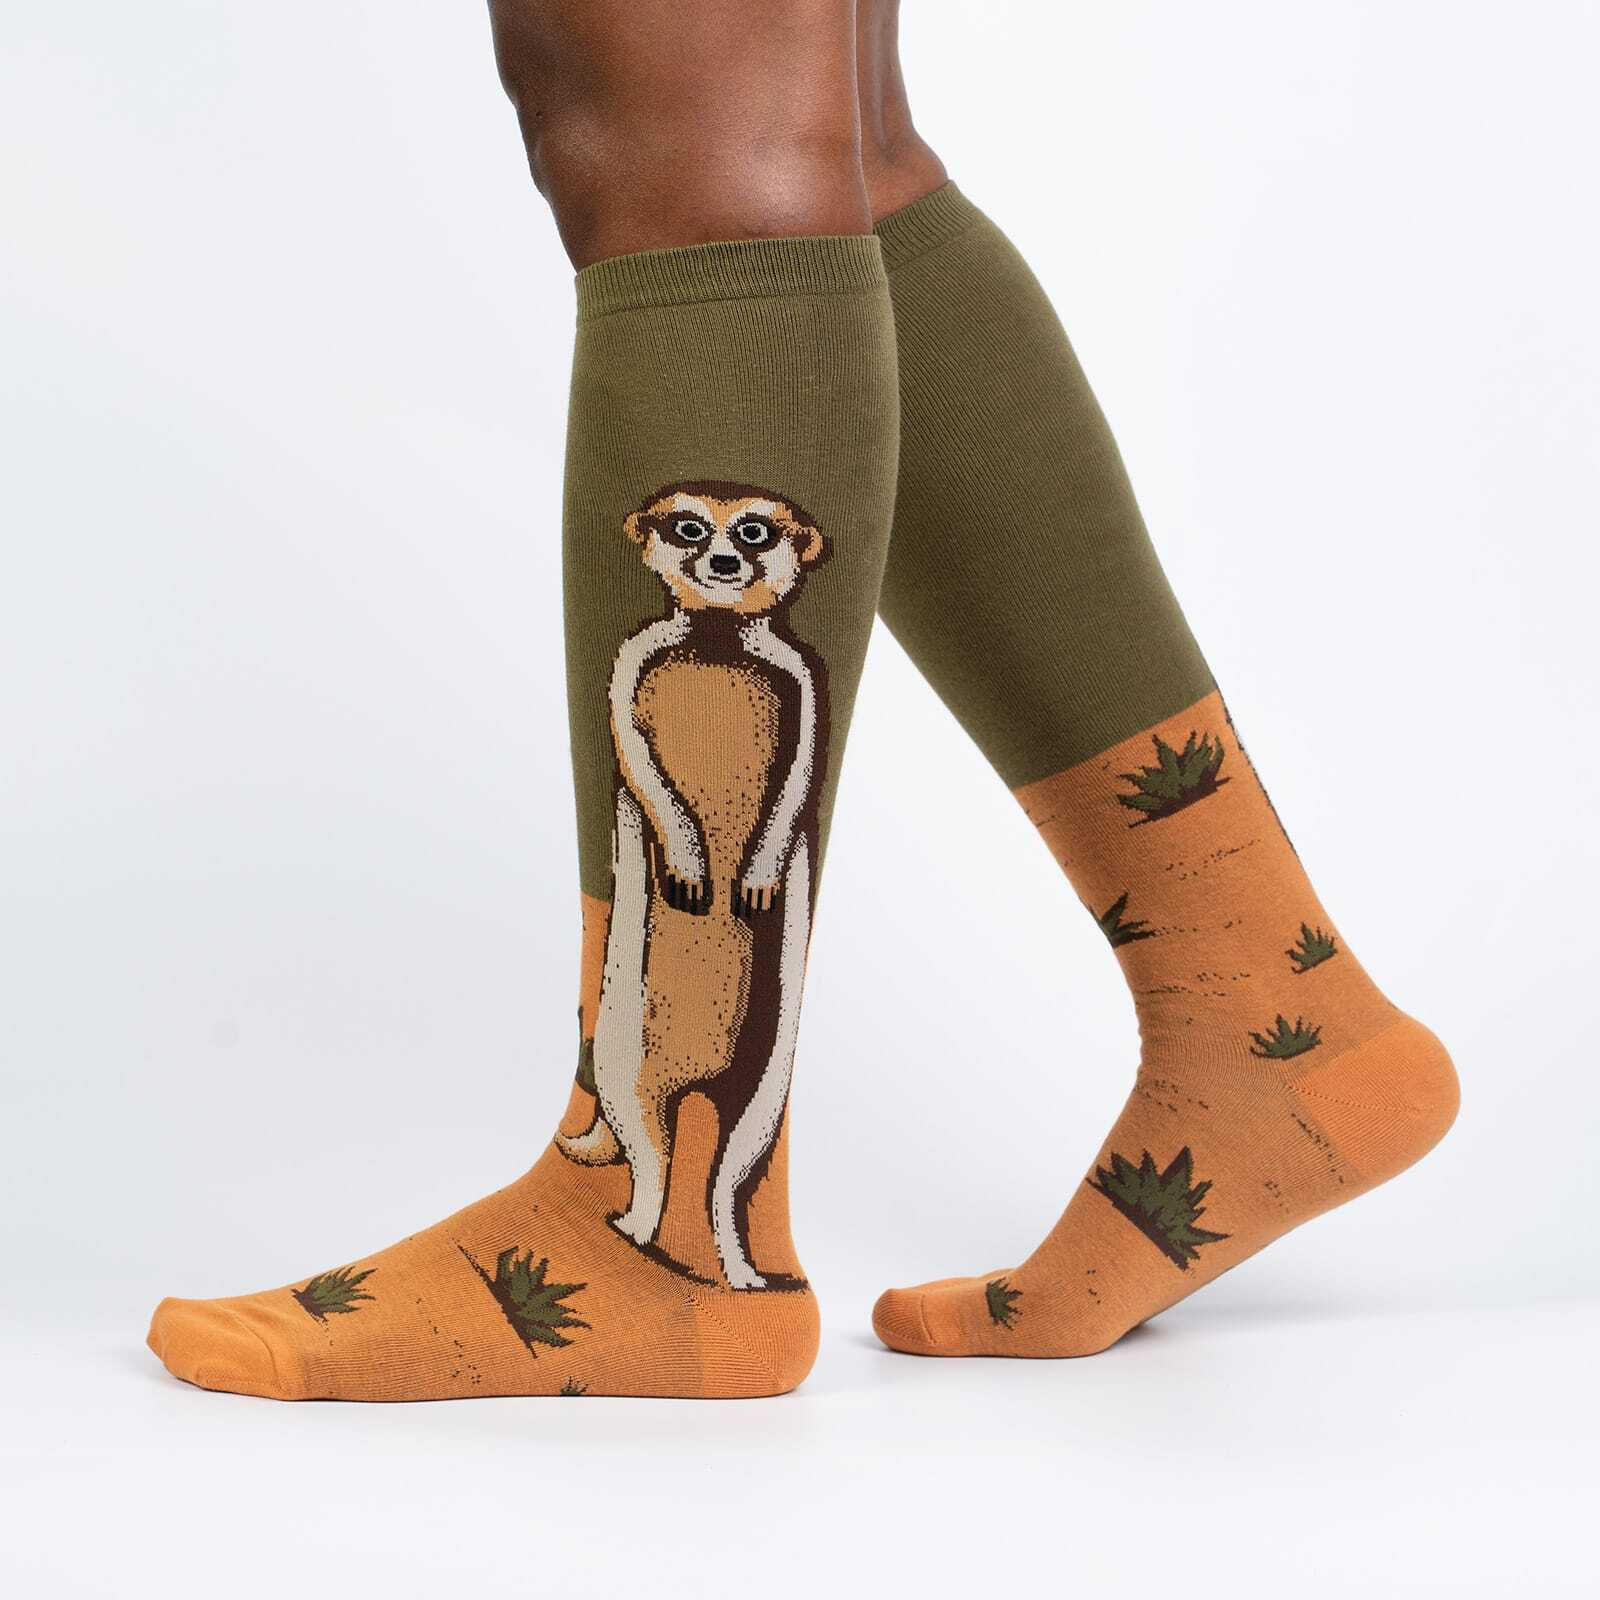 Meerkate Manner - Cute Funny Animal Knee High Socks Unisex - Men's and Women's in Orange